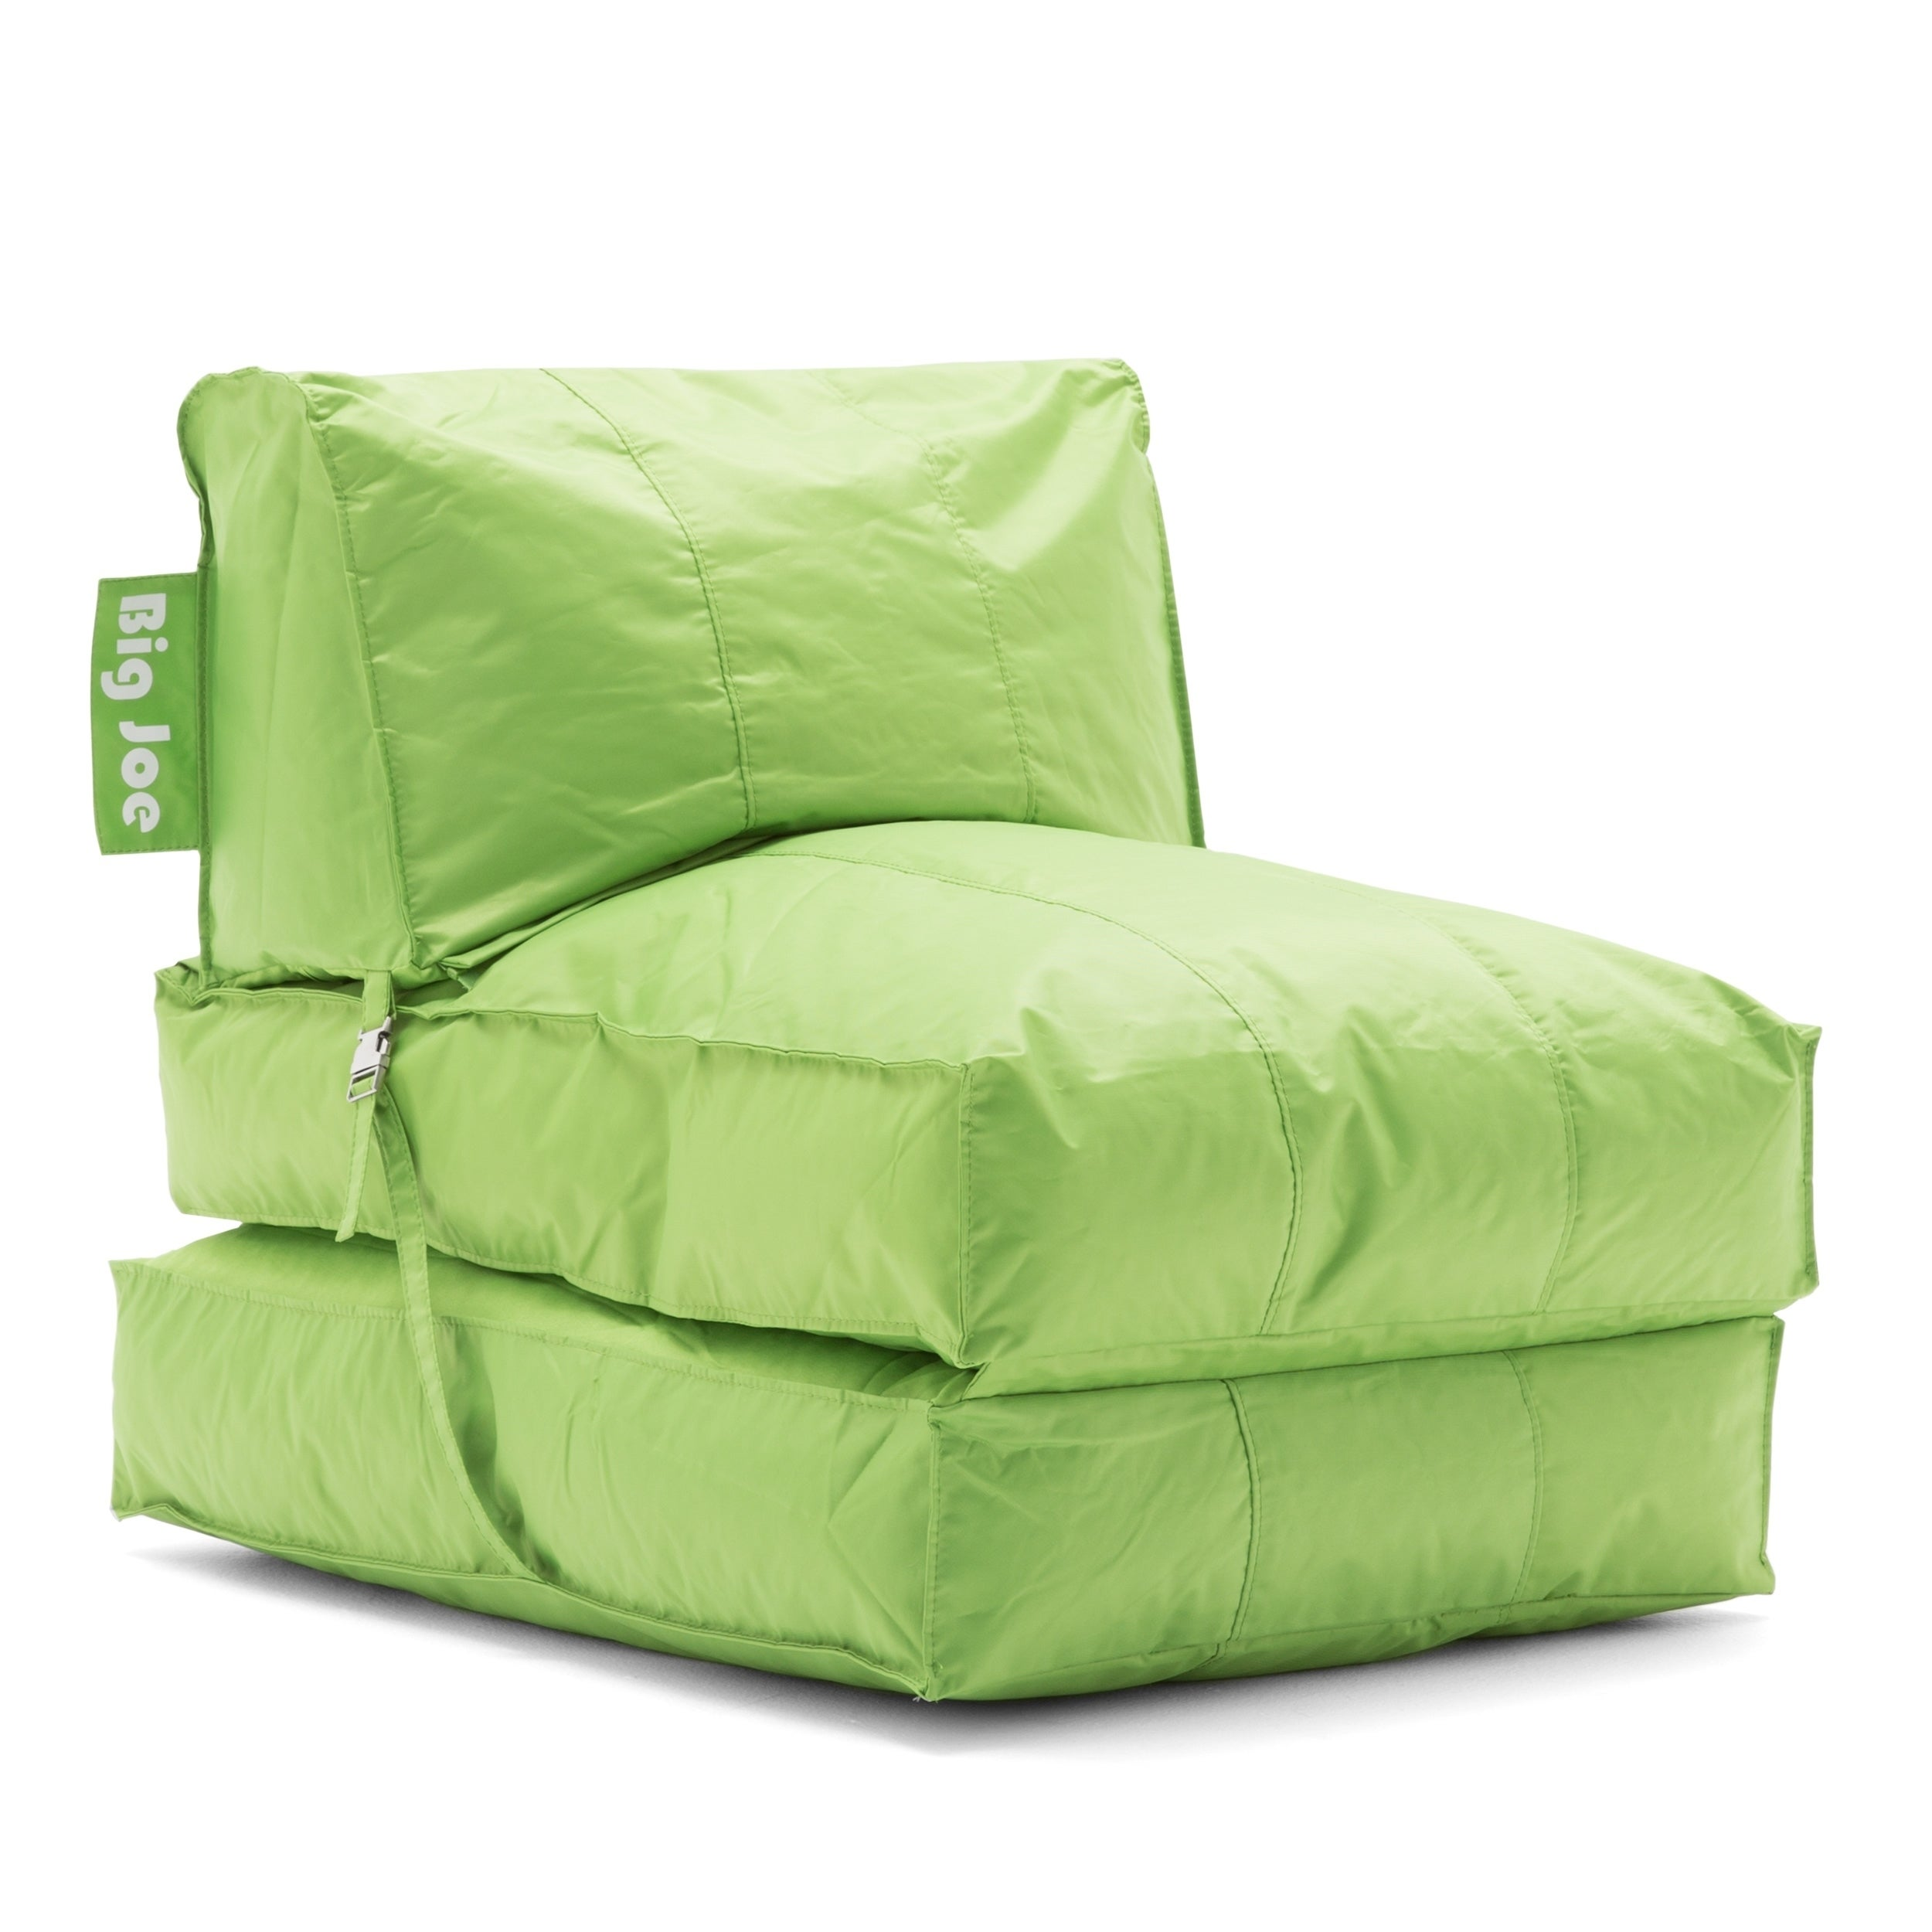 Genial Shop Big Joe Flip Lounger Bean Bag Chair   Free Shipping Today    Overstock.com   19759192